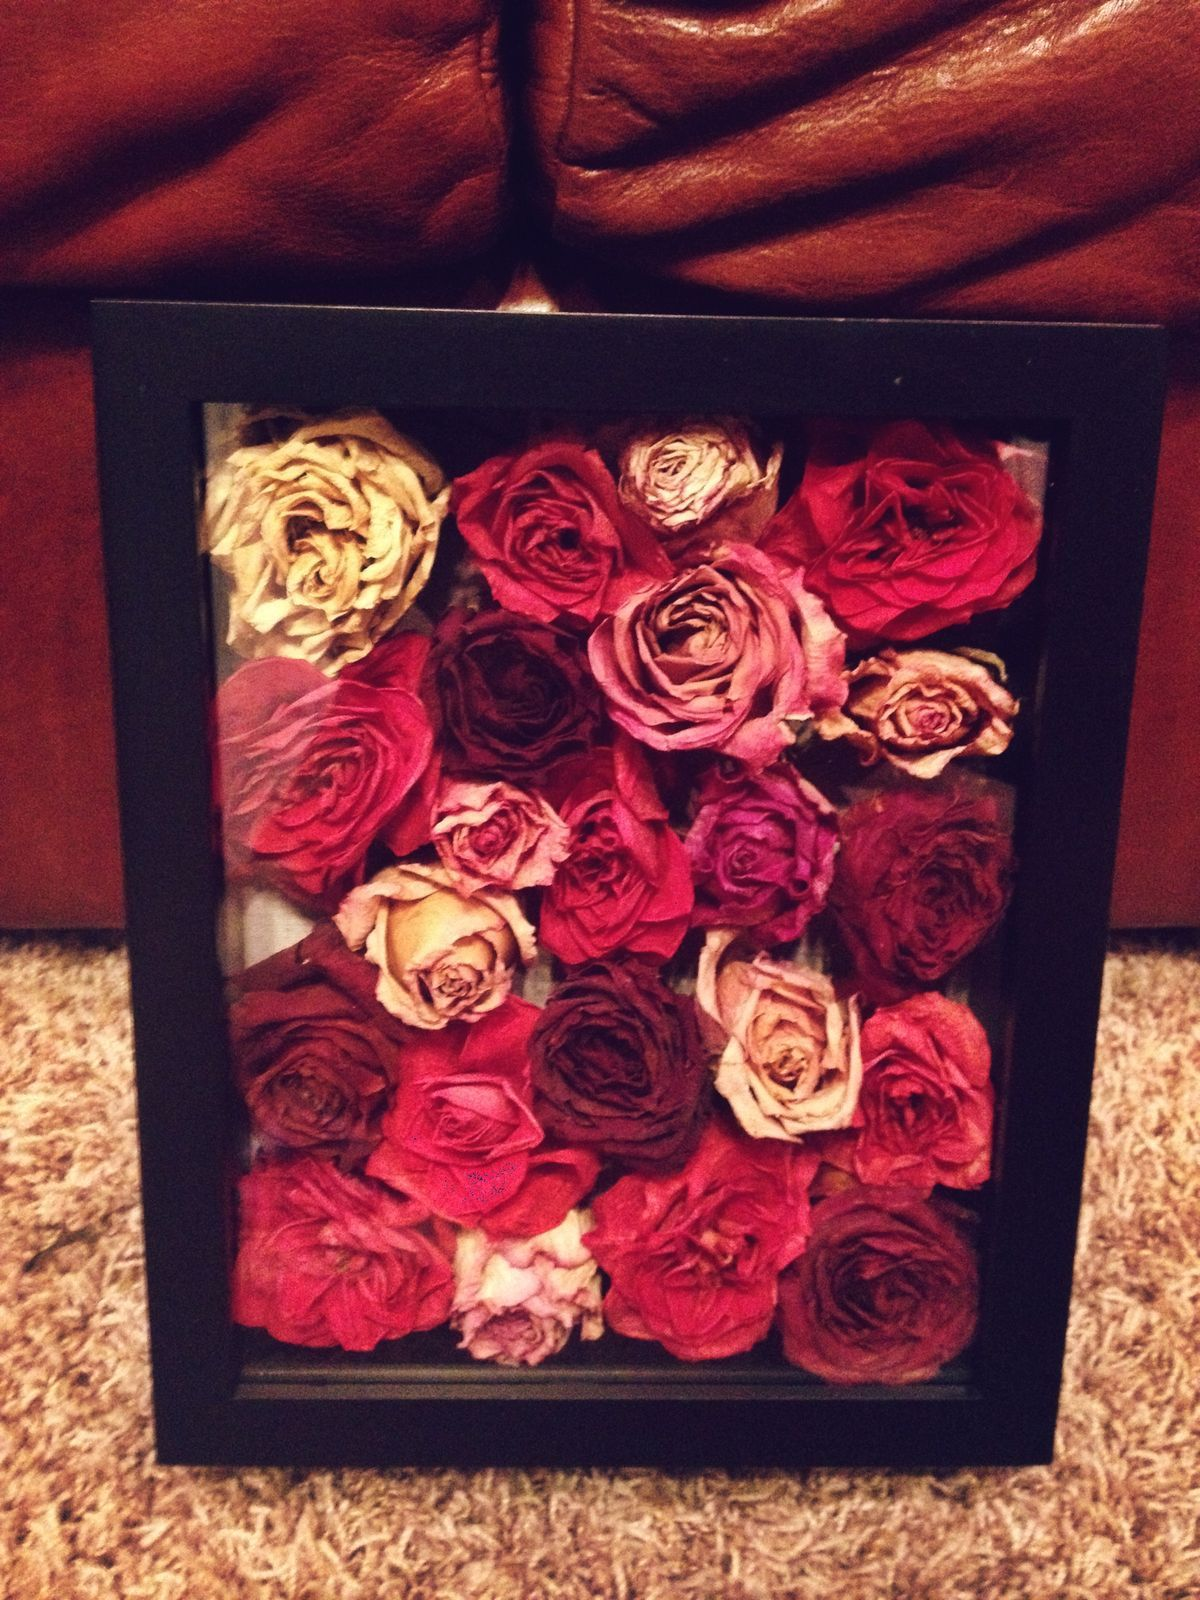 Flowers from bouquet in a shadow box | Wedding: Must-Haves ...